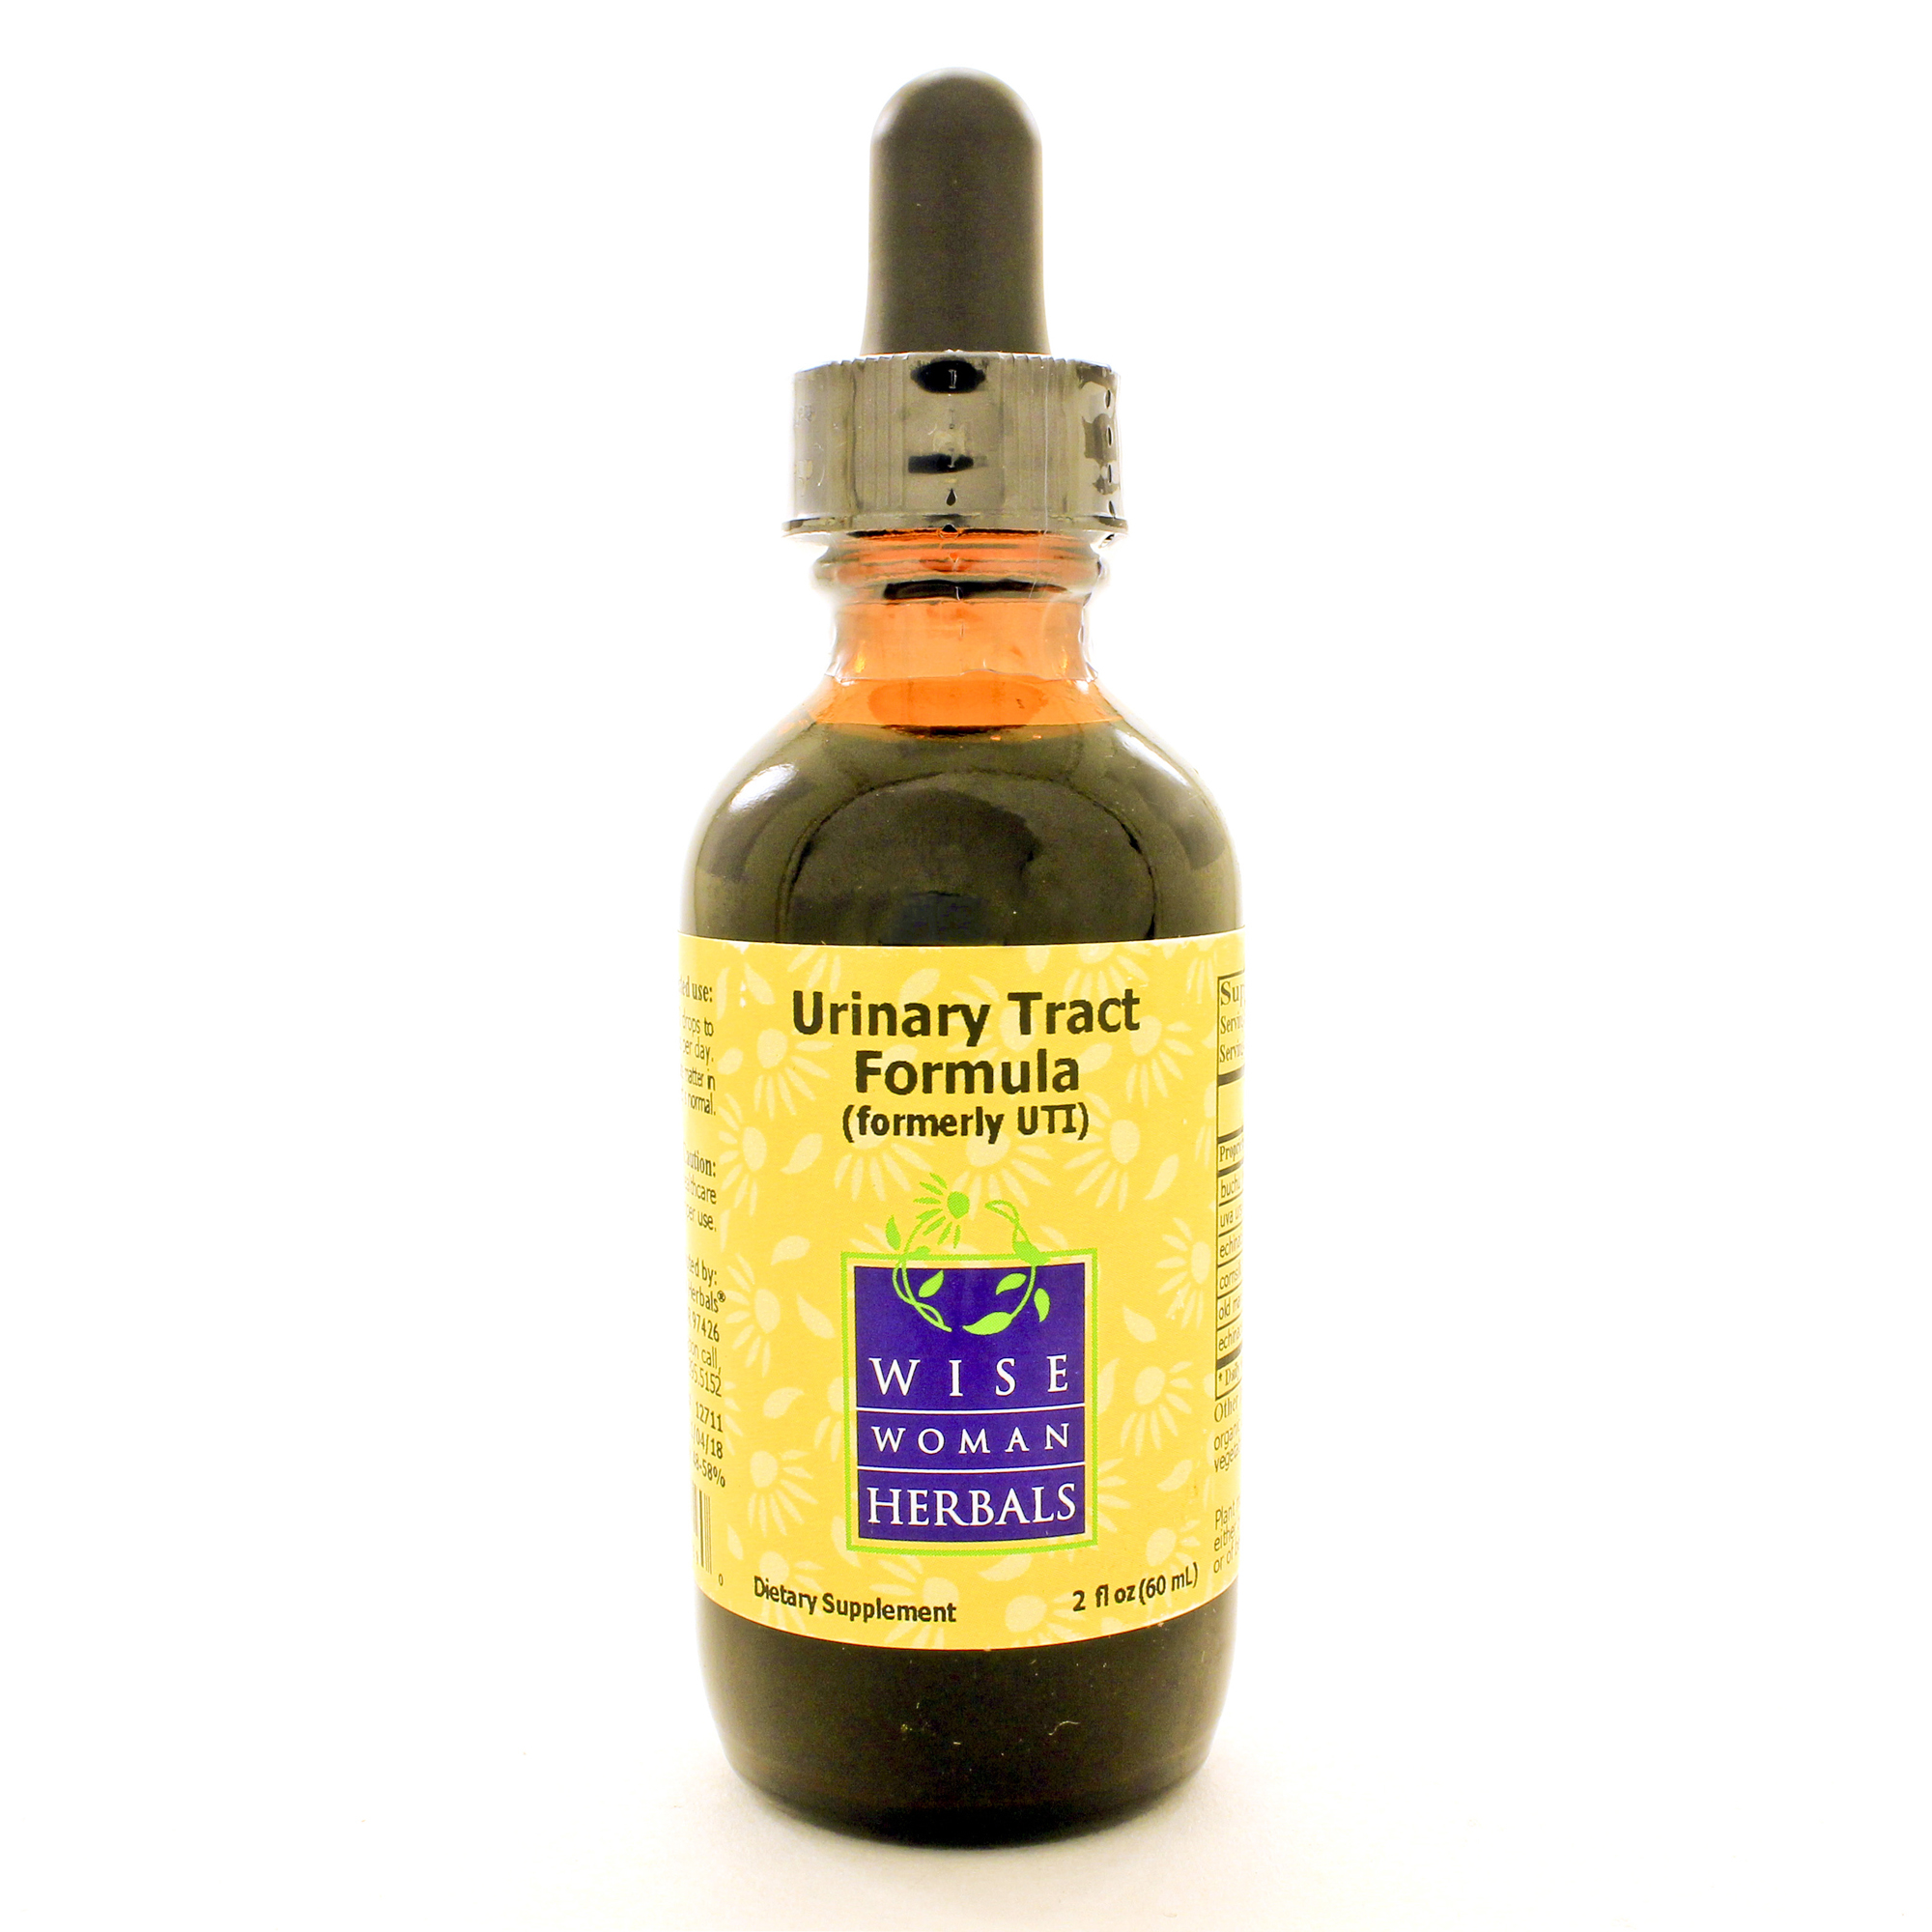 Wise Woman Herbals Urinary Tract Formula (formerly UTI Fo...